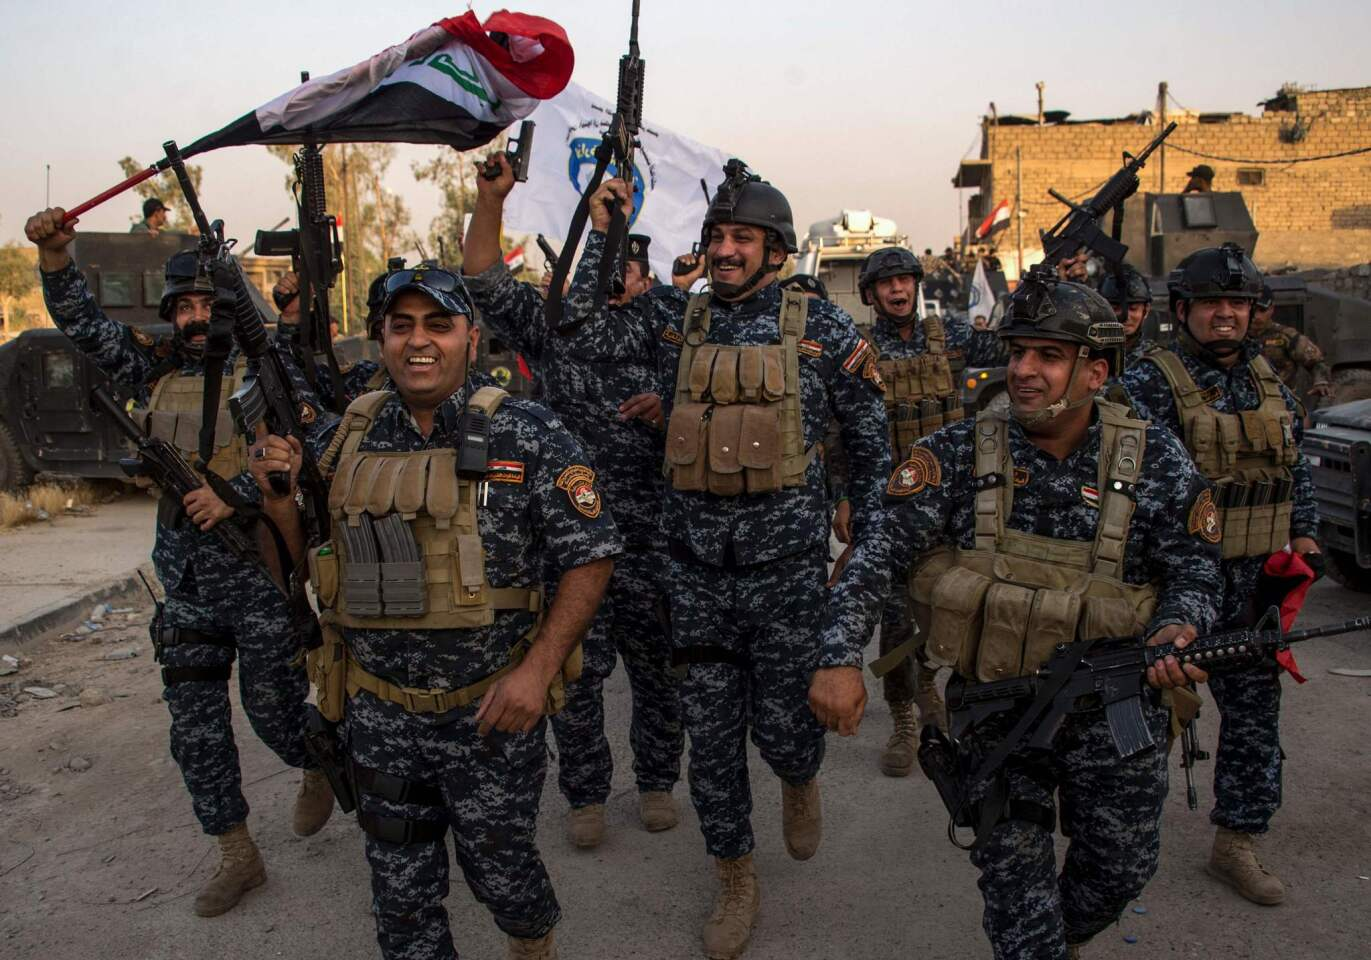 """Members of the Iraqi federal police forces celebrate in the Old City of Mosul on July 10, 2017, after the government's announcement of the """"liberation"""" of the embattled city from Islamic State fighters."""